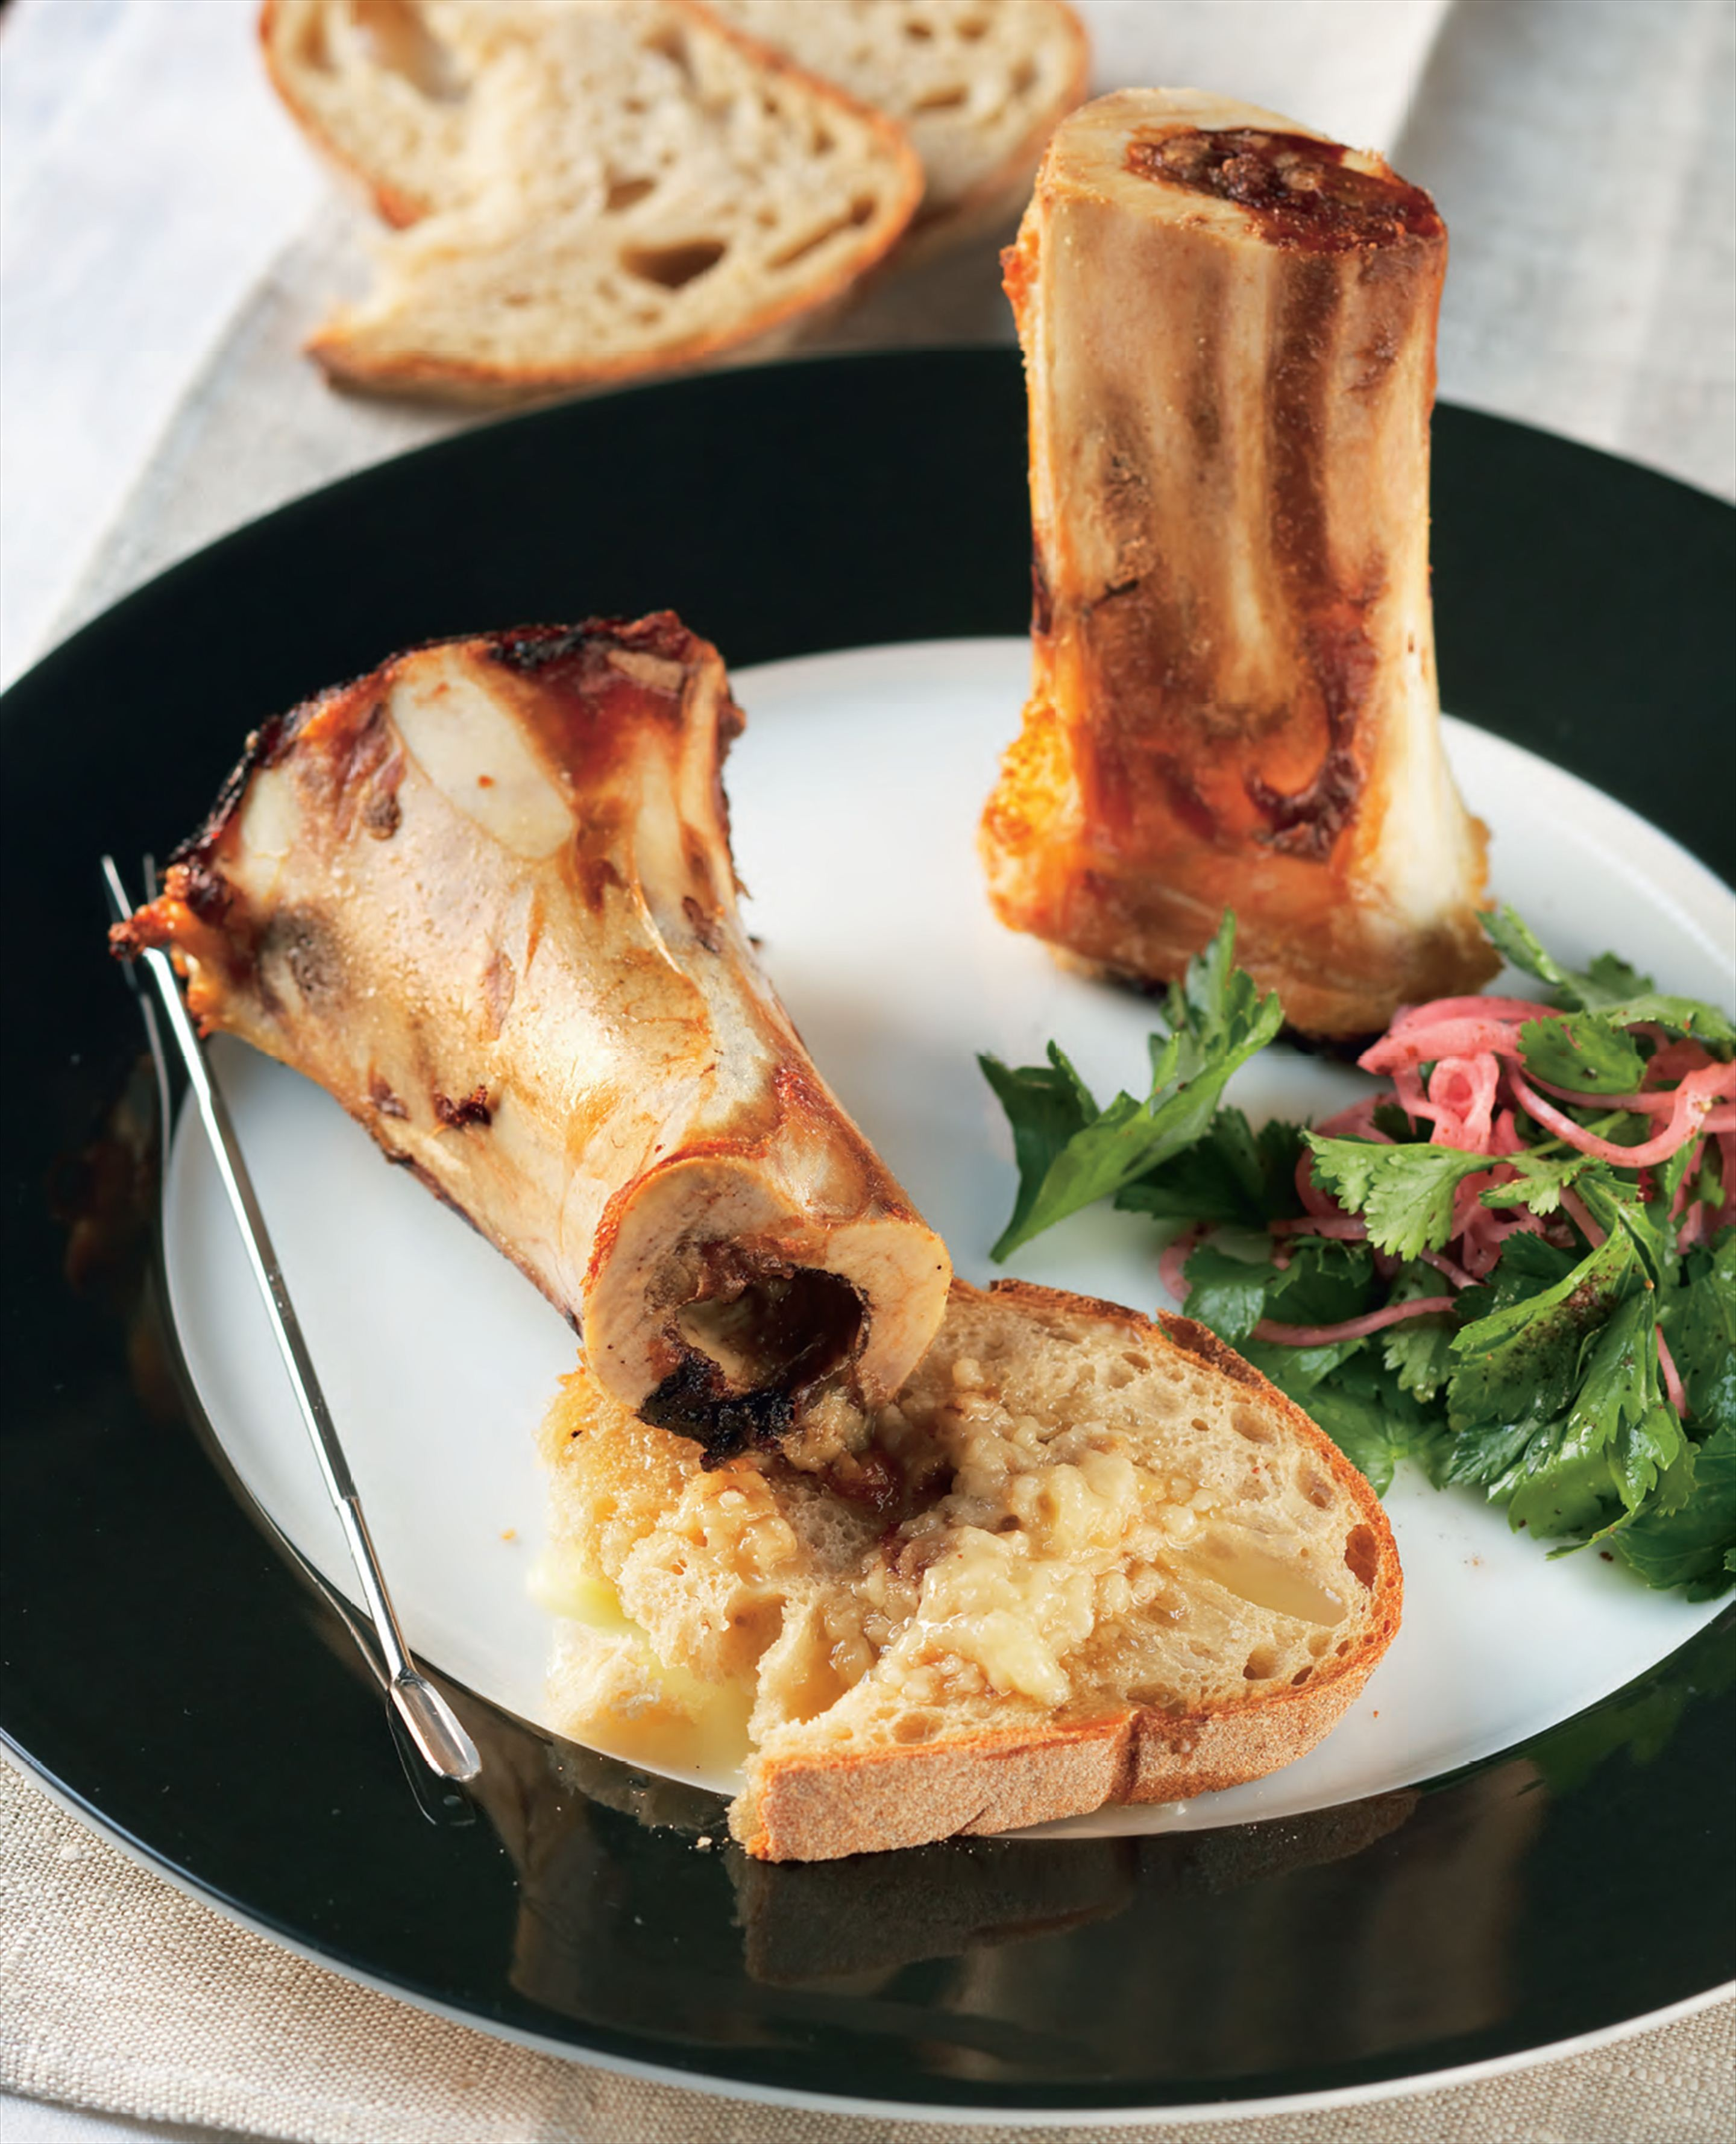 Roasted bone marrow with red onion salad